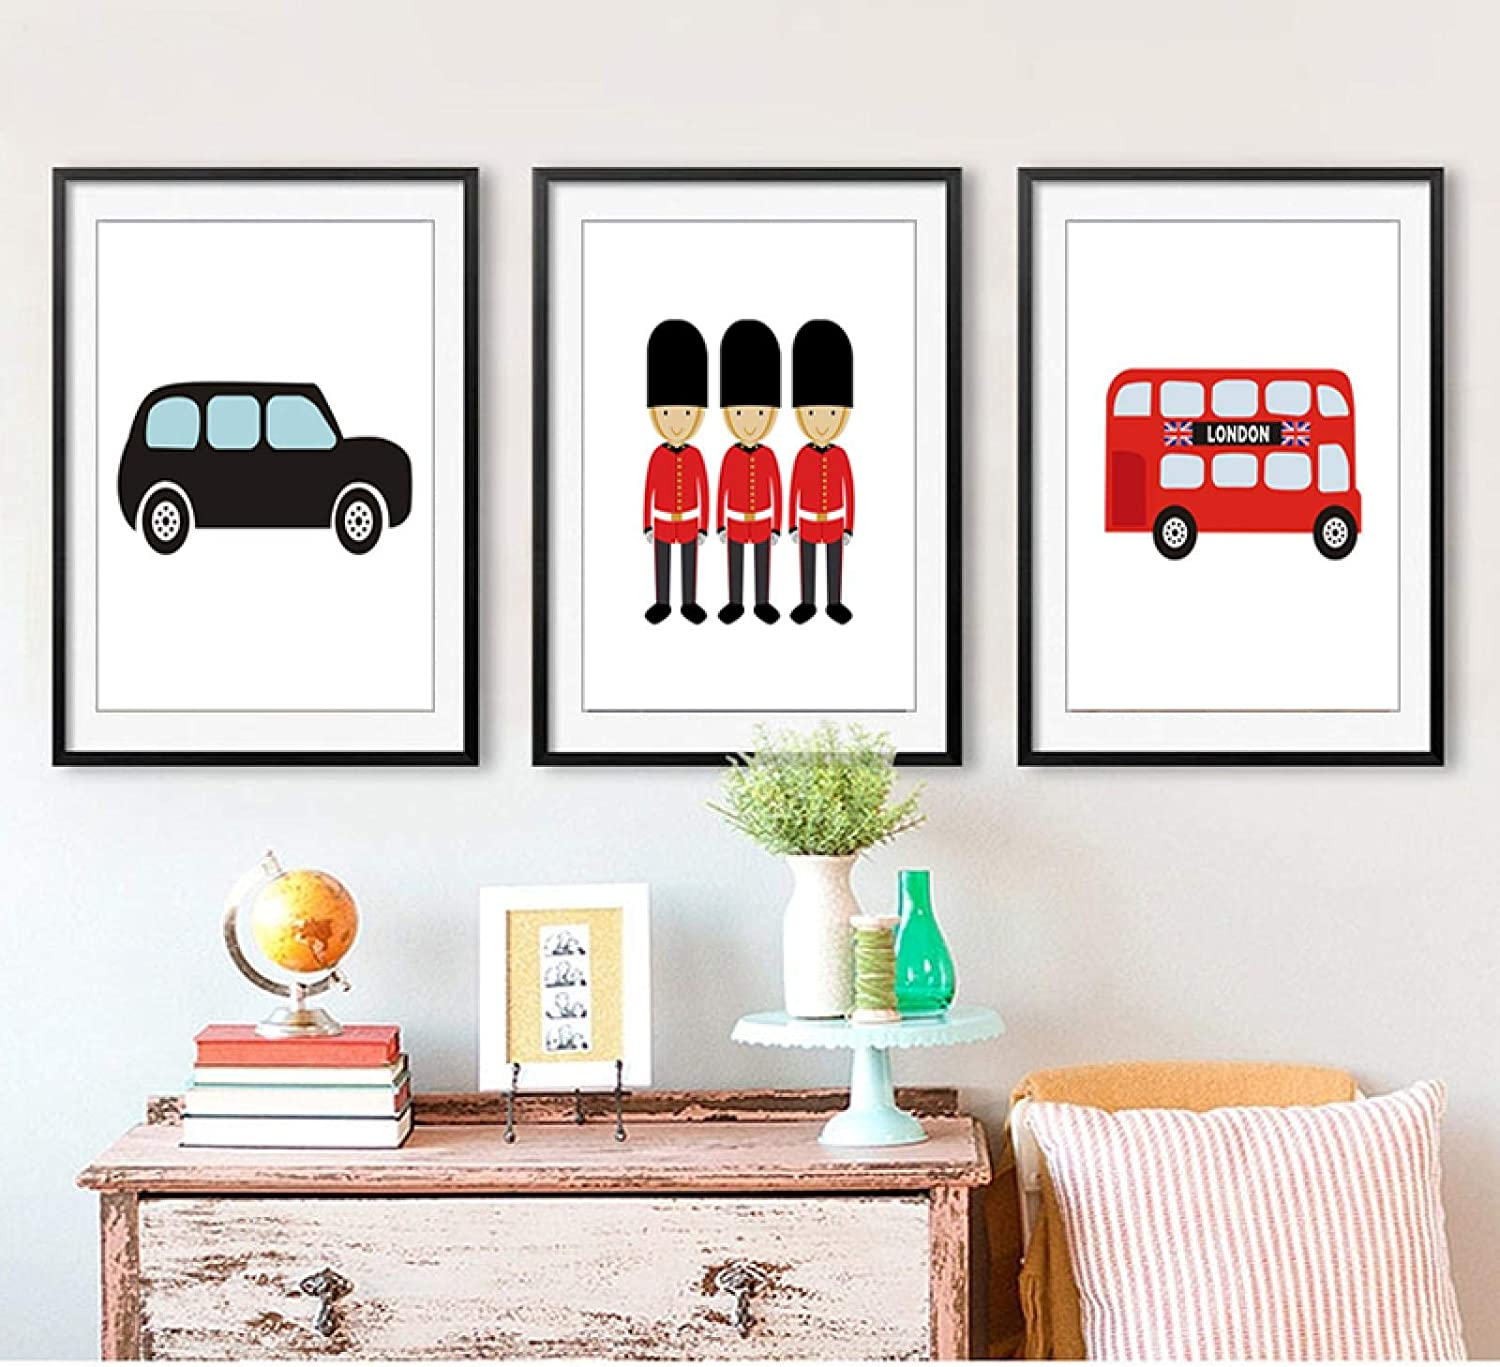 Print on Canvas Super special price London Bus At the price Painting Nursery Theme W Decor